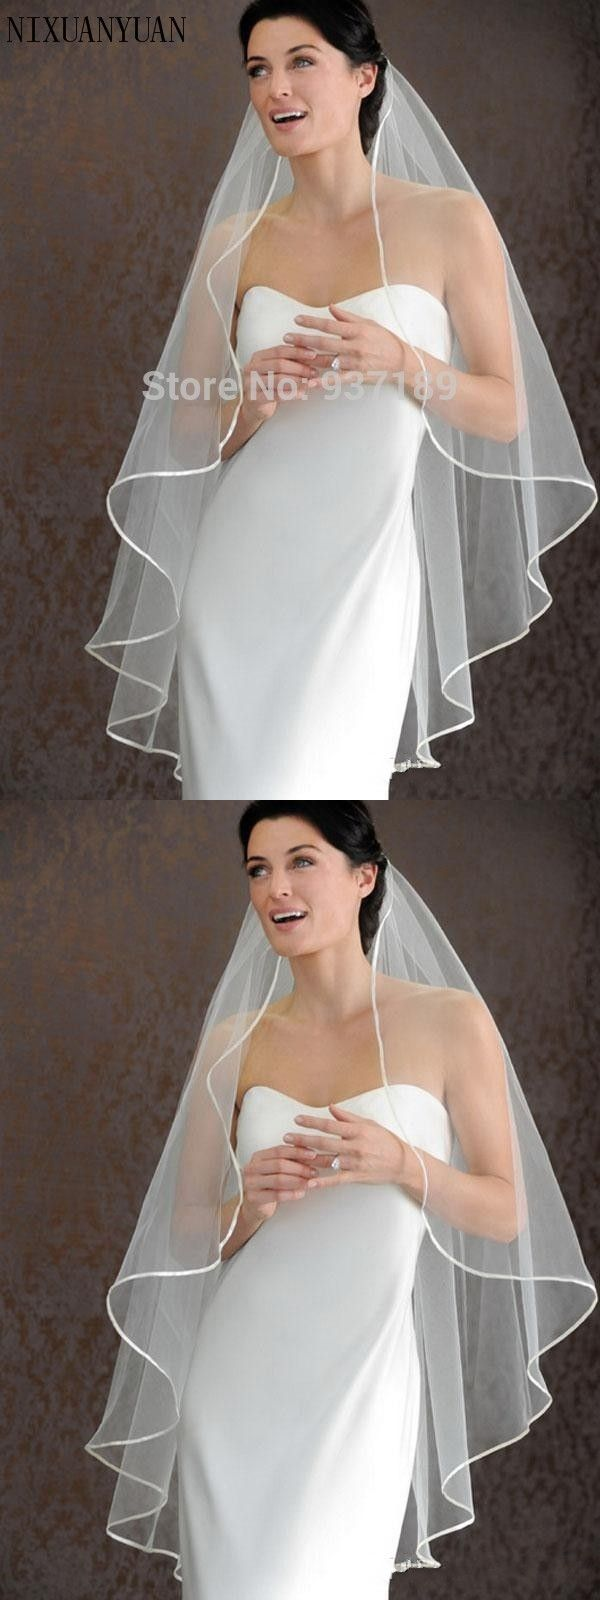 Hot Seller 1 LAYER White Ivory wedding Veils Short Bridal Wedding Accessories Veil bridal Wedding Veil With Satin Band